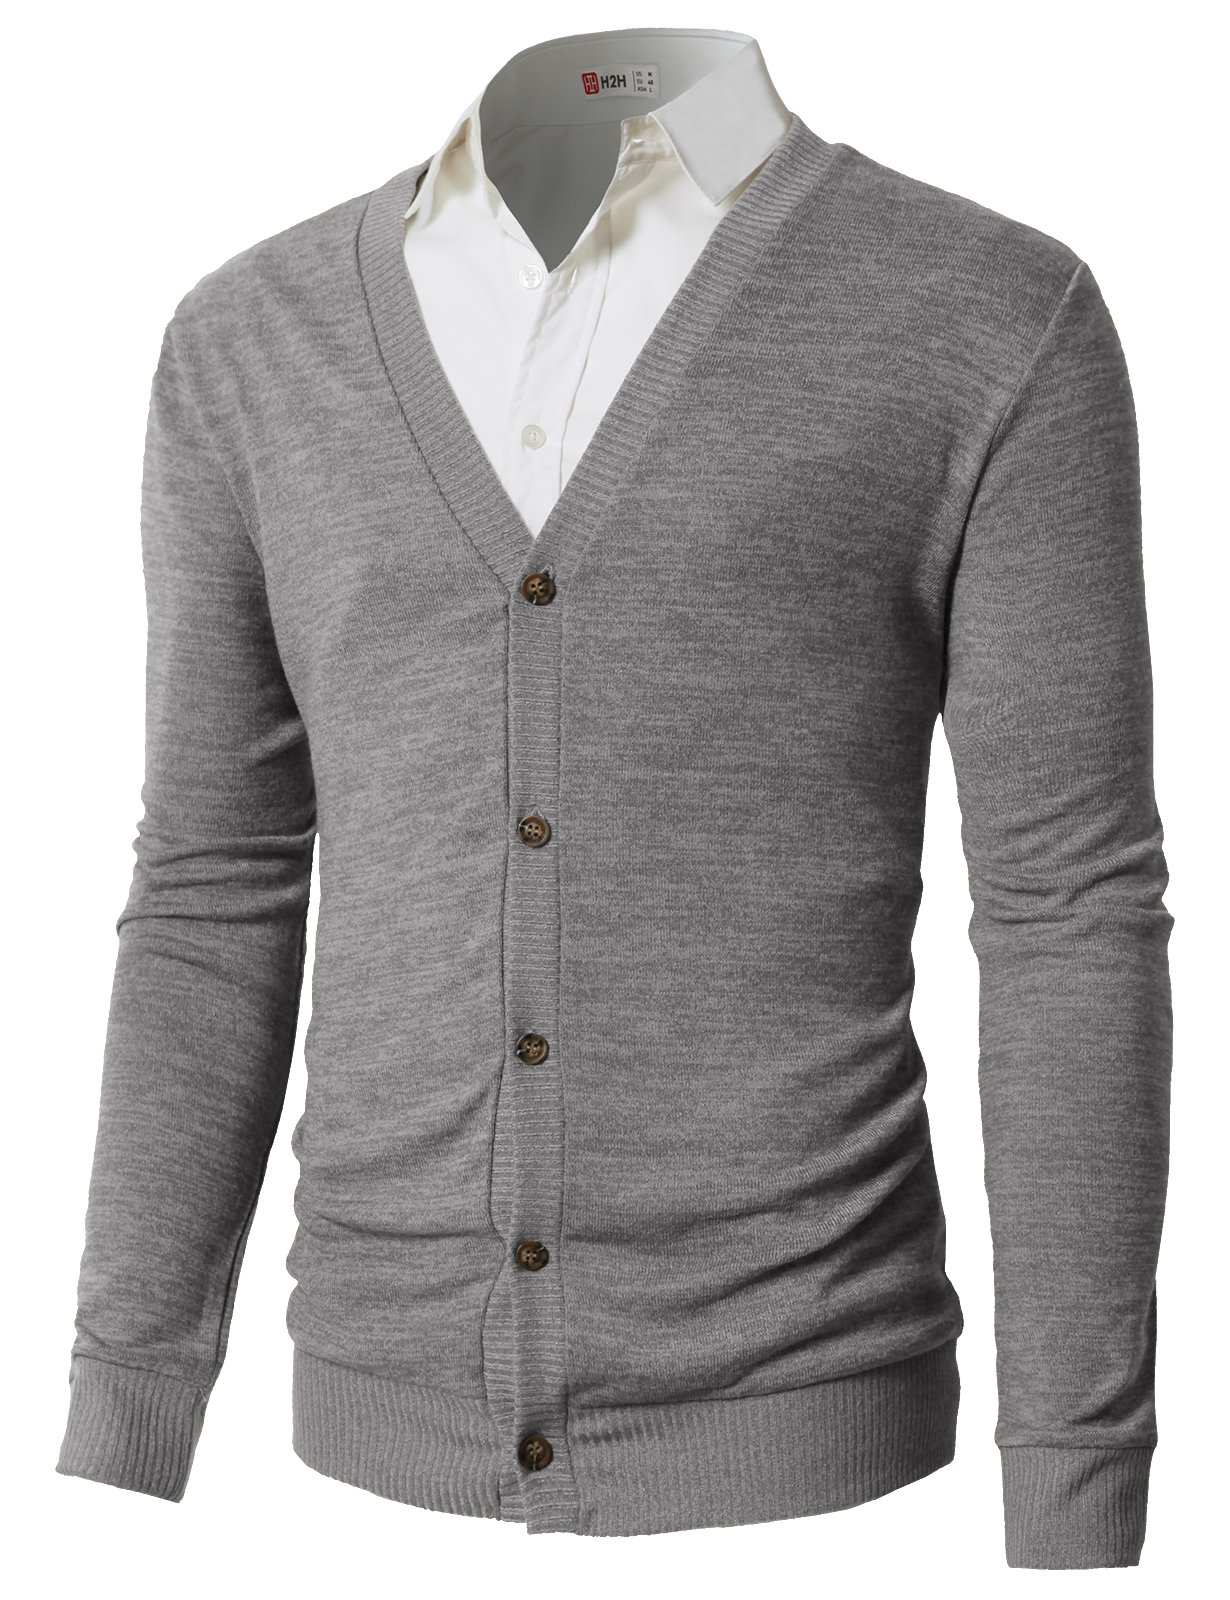 H2H Men's Soft Touch Zip-Front Cardigan Sweater Of Solid Colors Gray US S/Asia M (CMOCAL019) by H2H